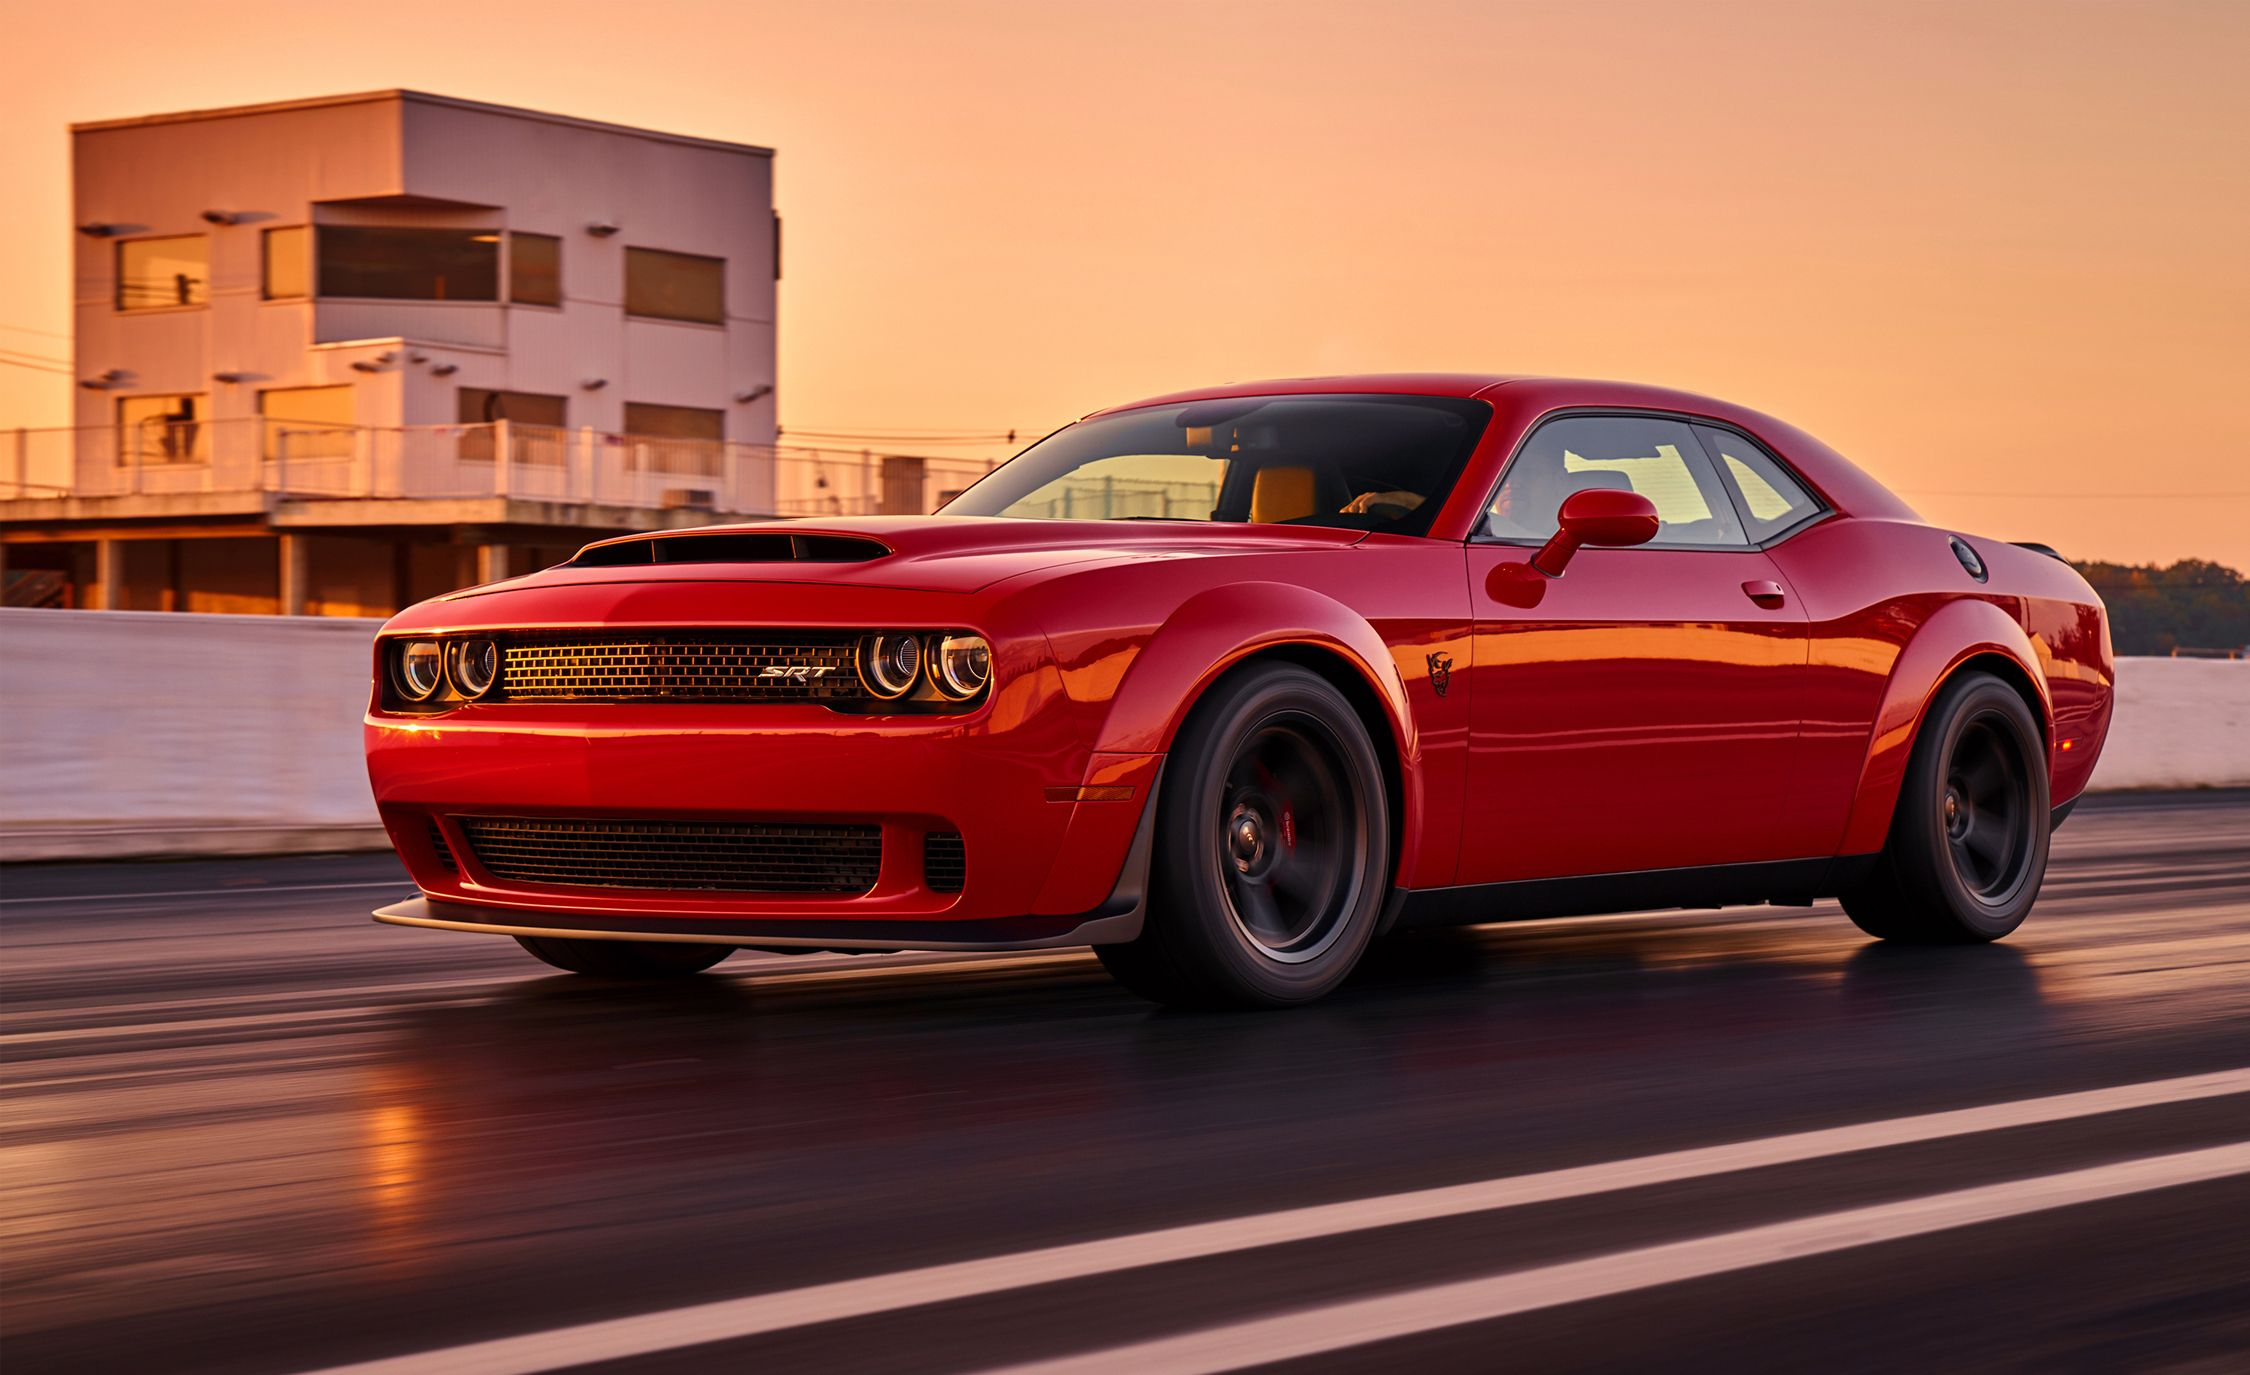 2018 Dodge Challenger Srt Demon Photos And Info News Car And Driver